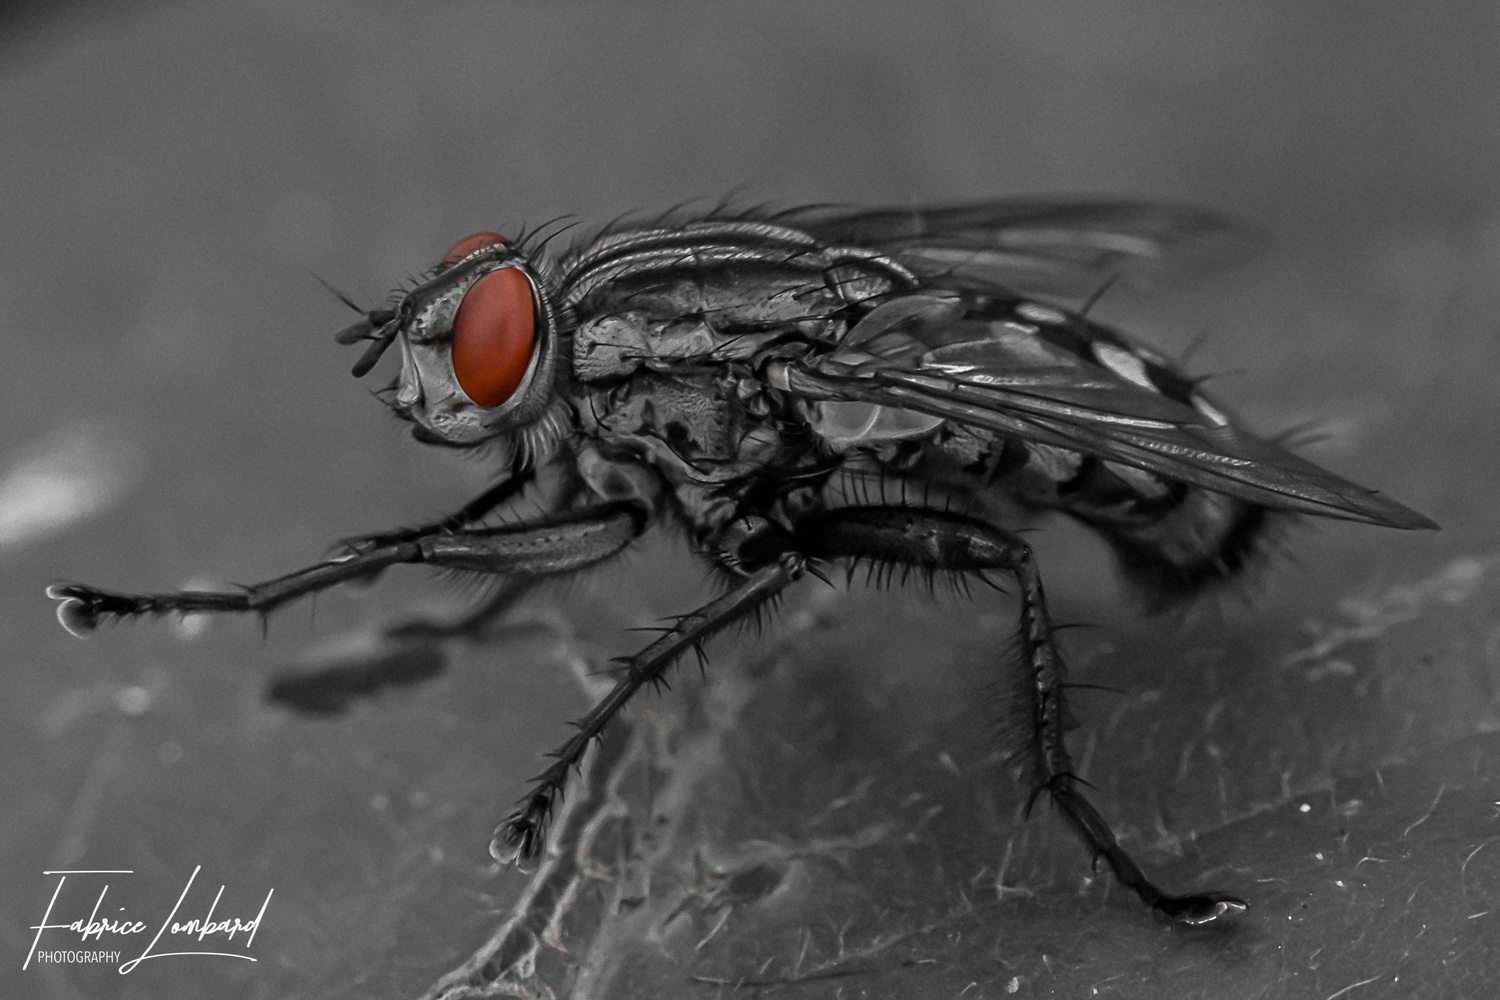 The fly by Fabrice Lombard